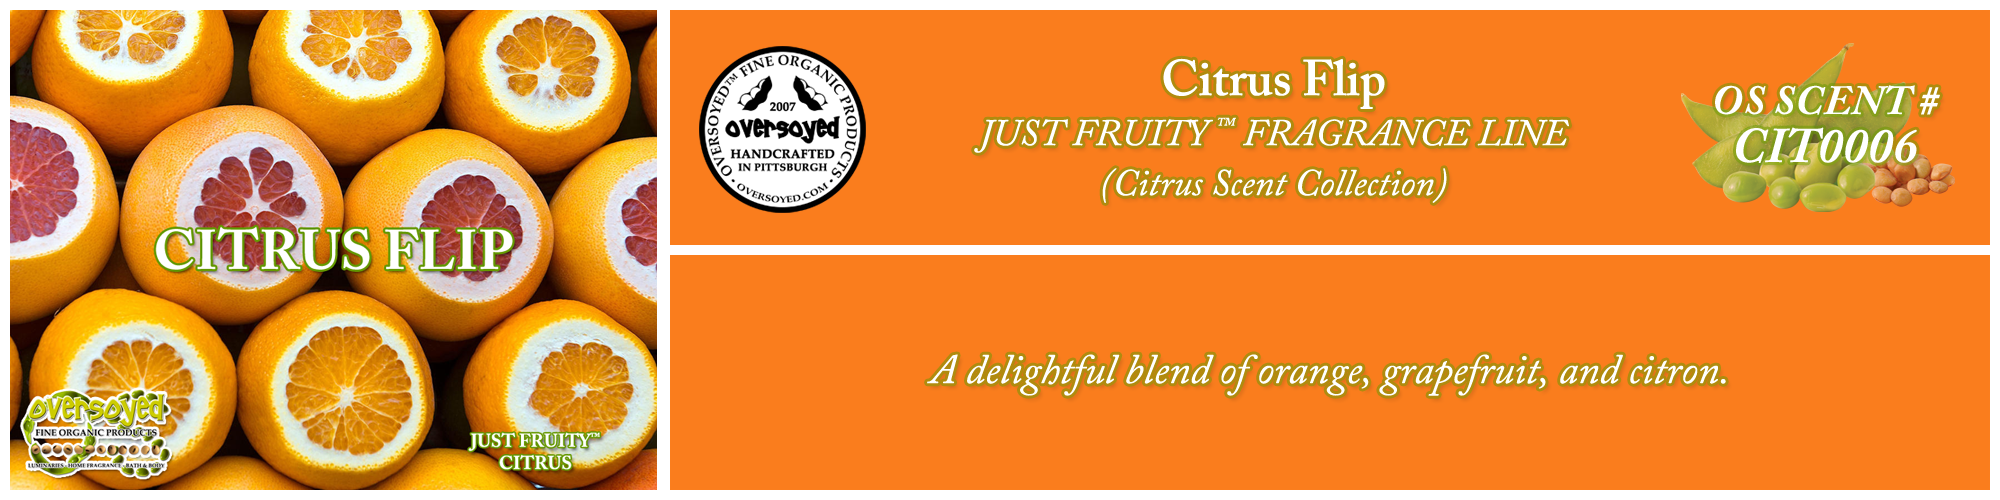 Citrus Flip Handcrafted Products Collection